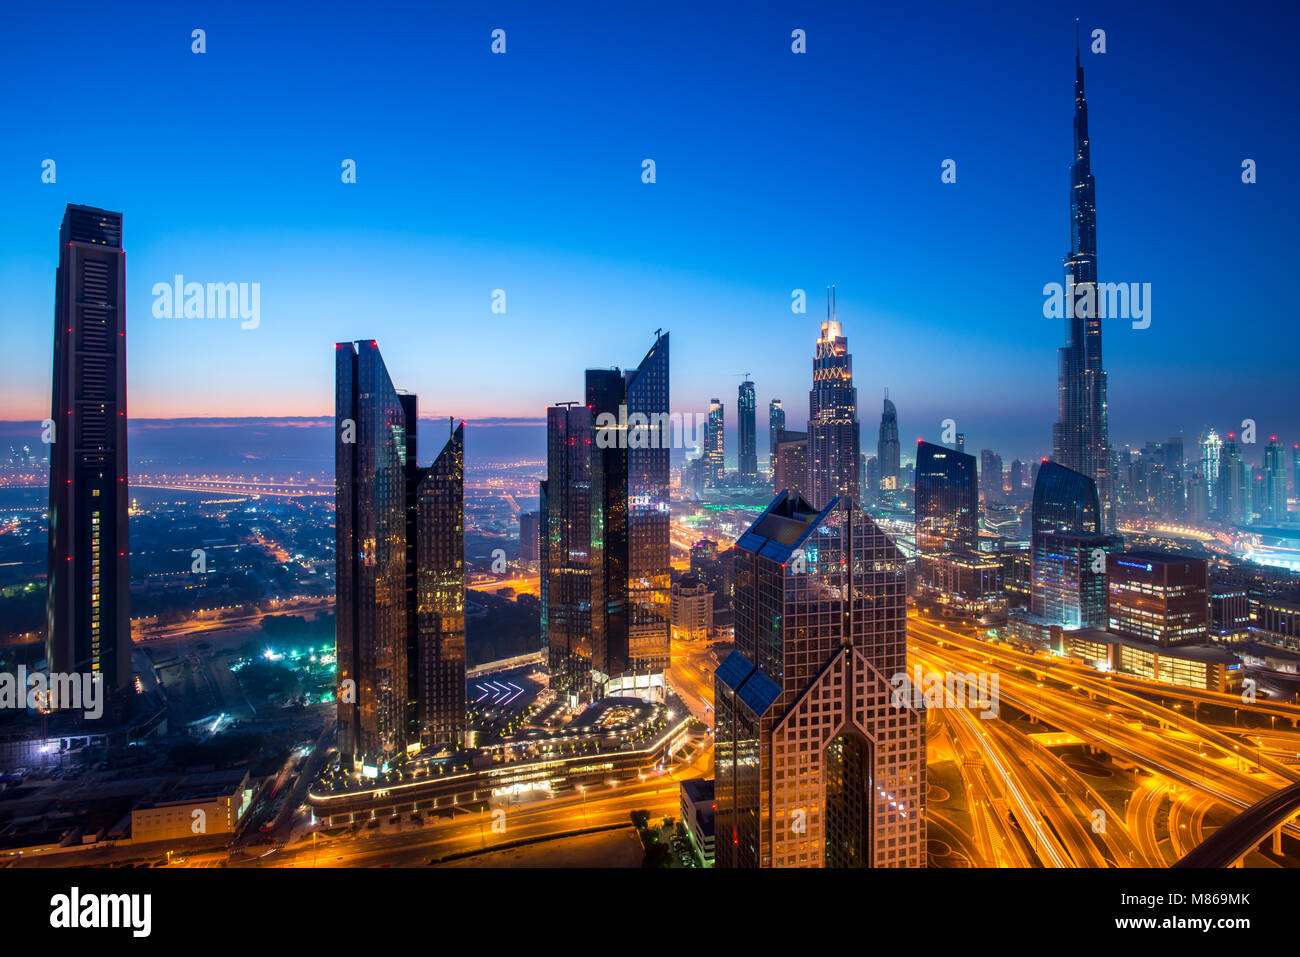 Stadtansichten durch Tag und Nacht, mit Singapur oder Dubai. Für Singapur, mit Marina Bay Sands am Hafen. Dubai Stockbild